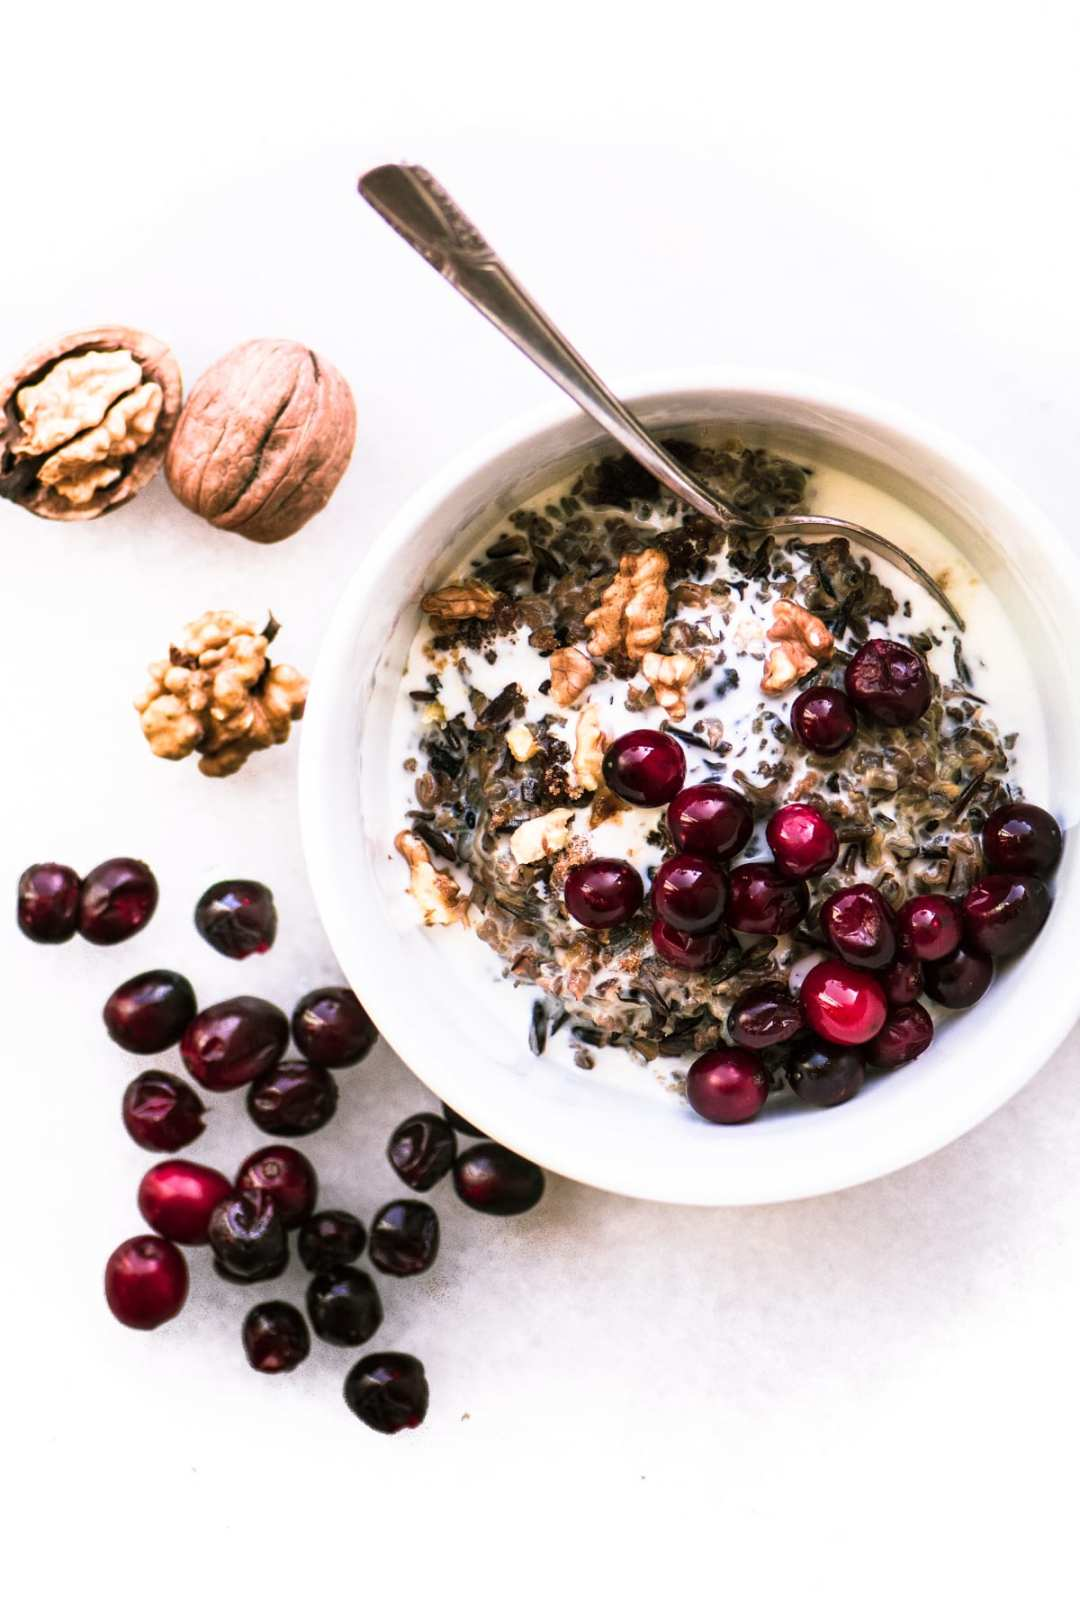 Wild Rice Porridge with cranberries and walnuts in a white bowl with spoon